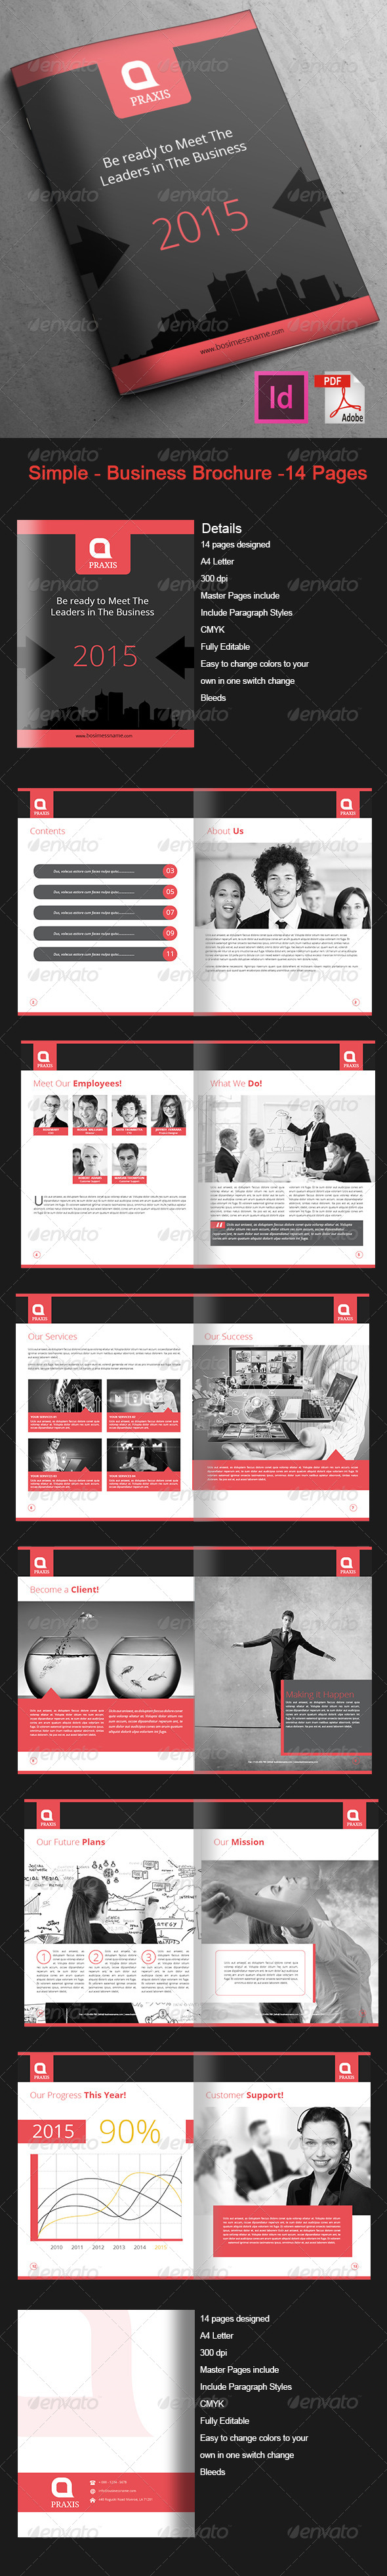 GraphicRiver Simple Business Brochure 14-Pages 7769492